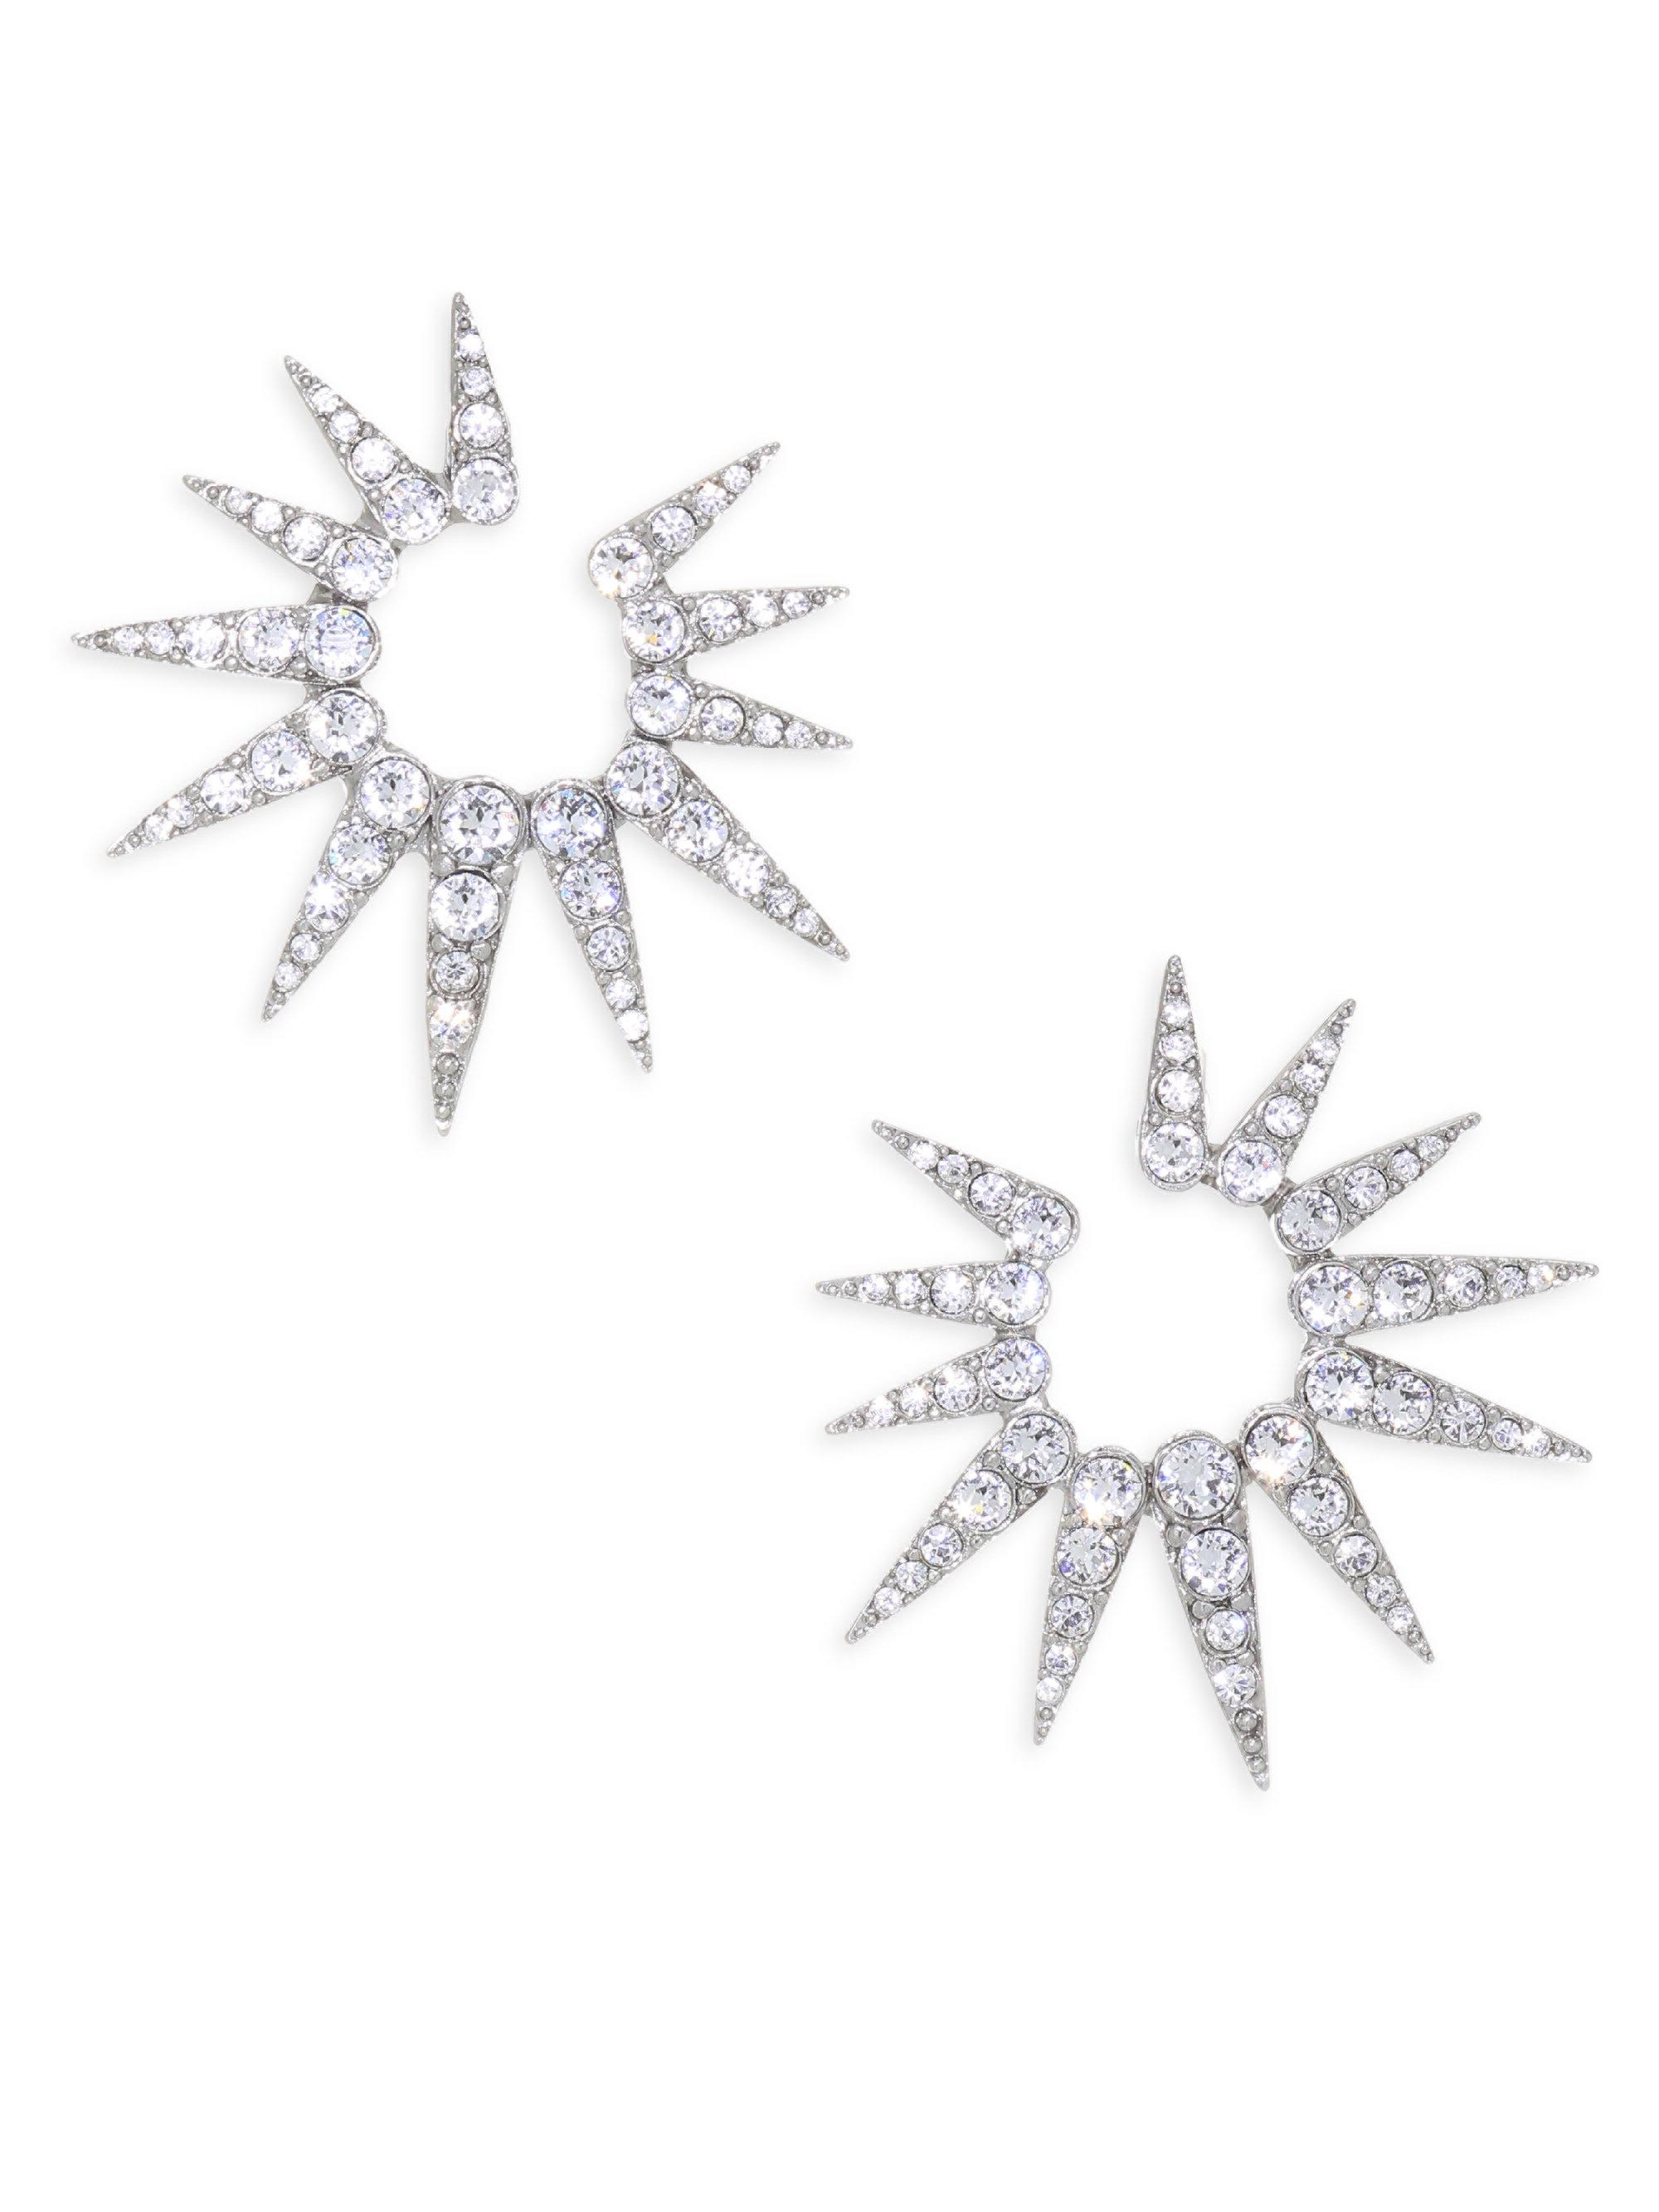 Oscar De La Renta Sea Urchin Small Crystal Earrings JtI3fGrN